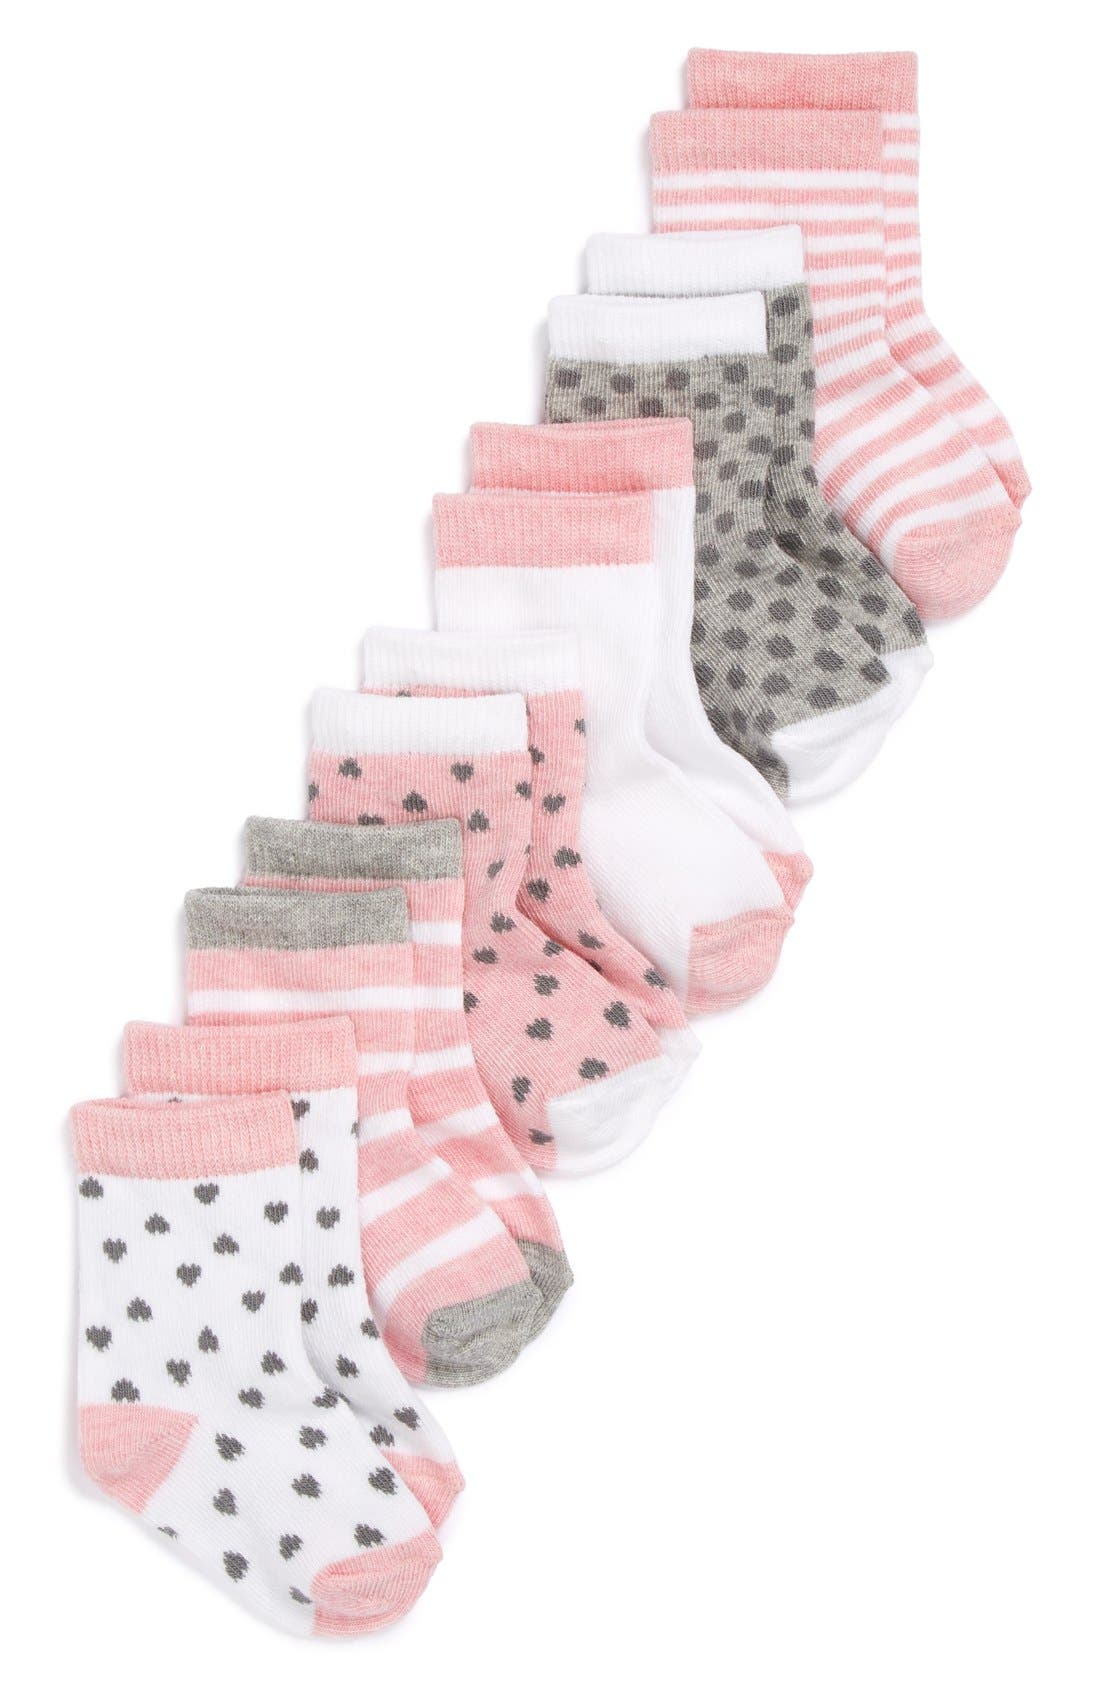 Main Image - Nordstrom Baby Crew Socks (Baby) (6-Pack)